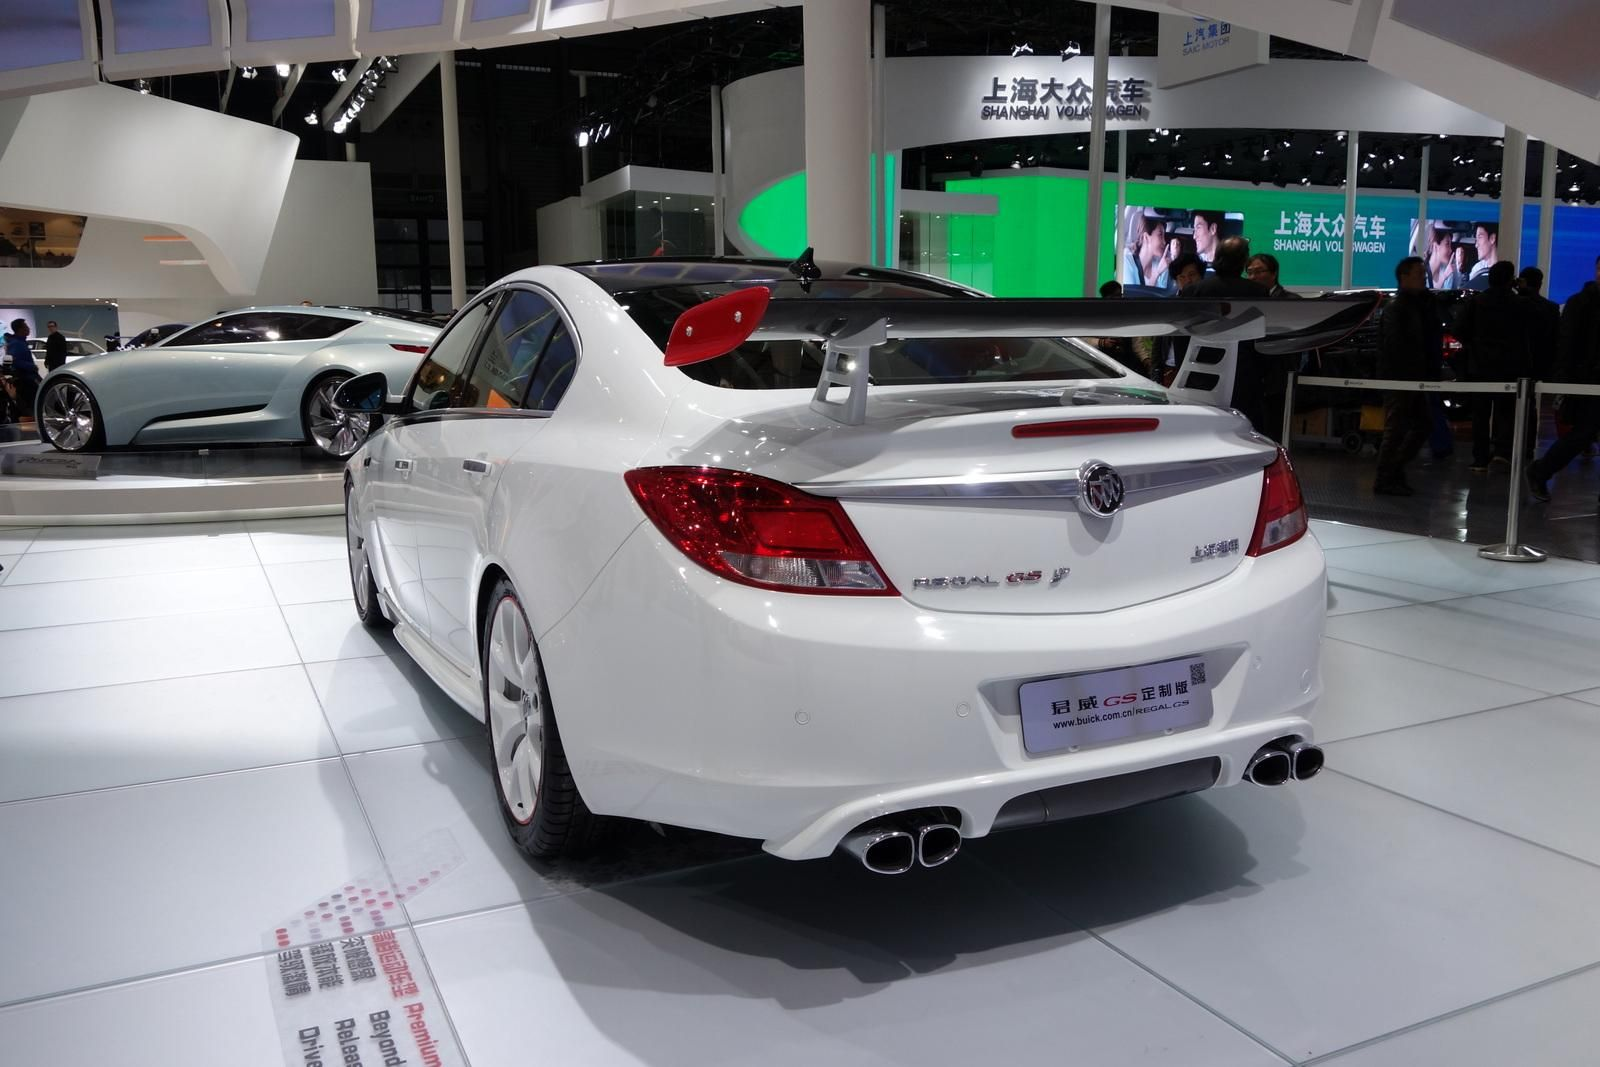 Modified Buick Regal Gs Sedan And Excelle Xt Hatchback Presented At Auto Shanghai Buick Regal Gs Buick Hatchback